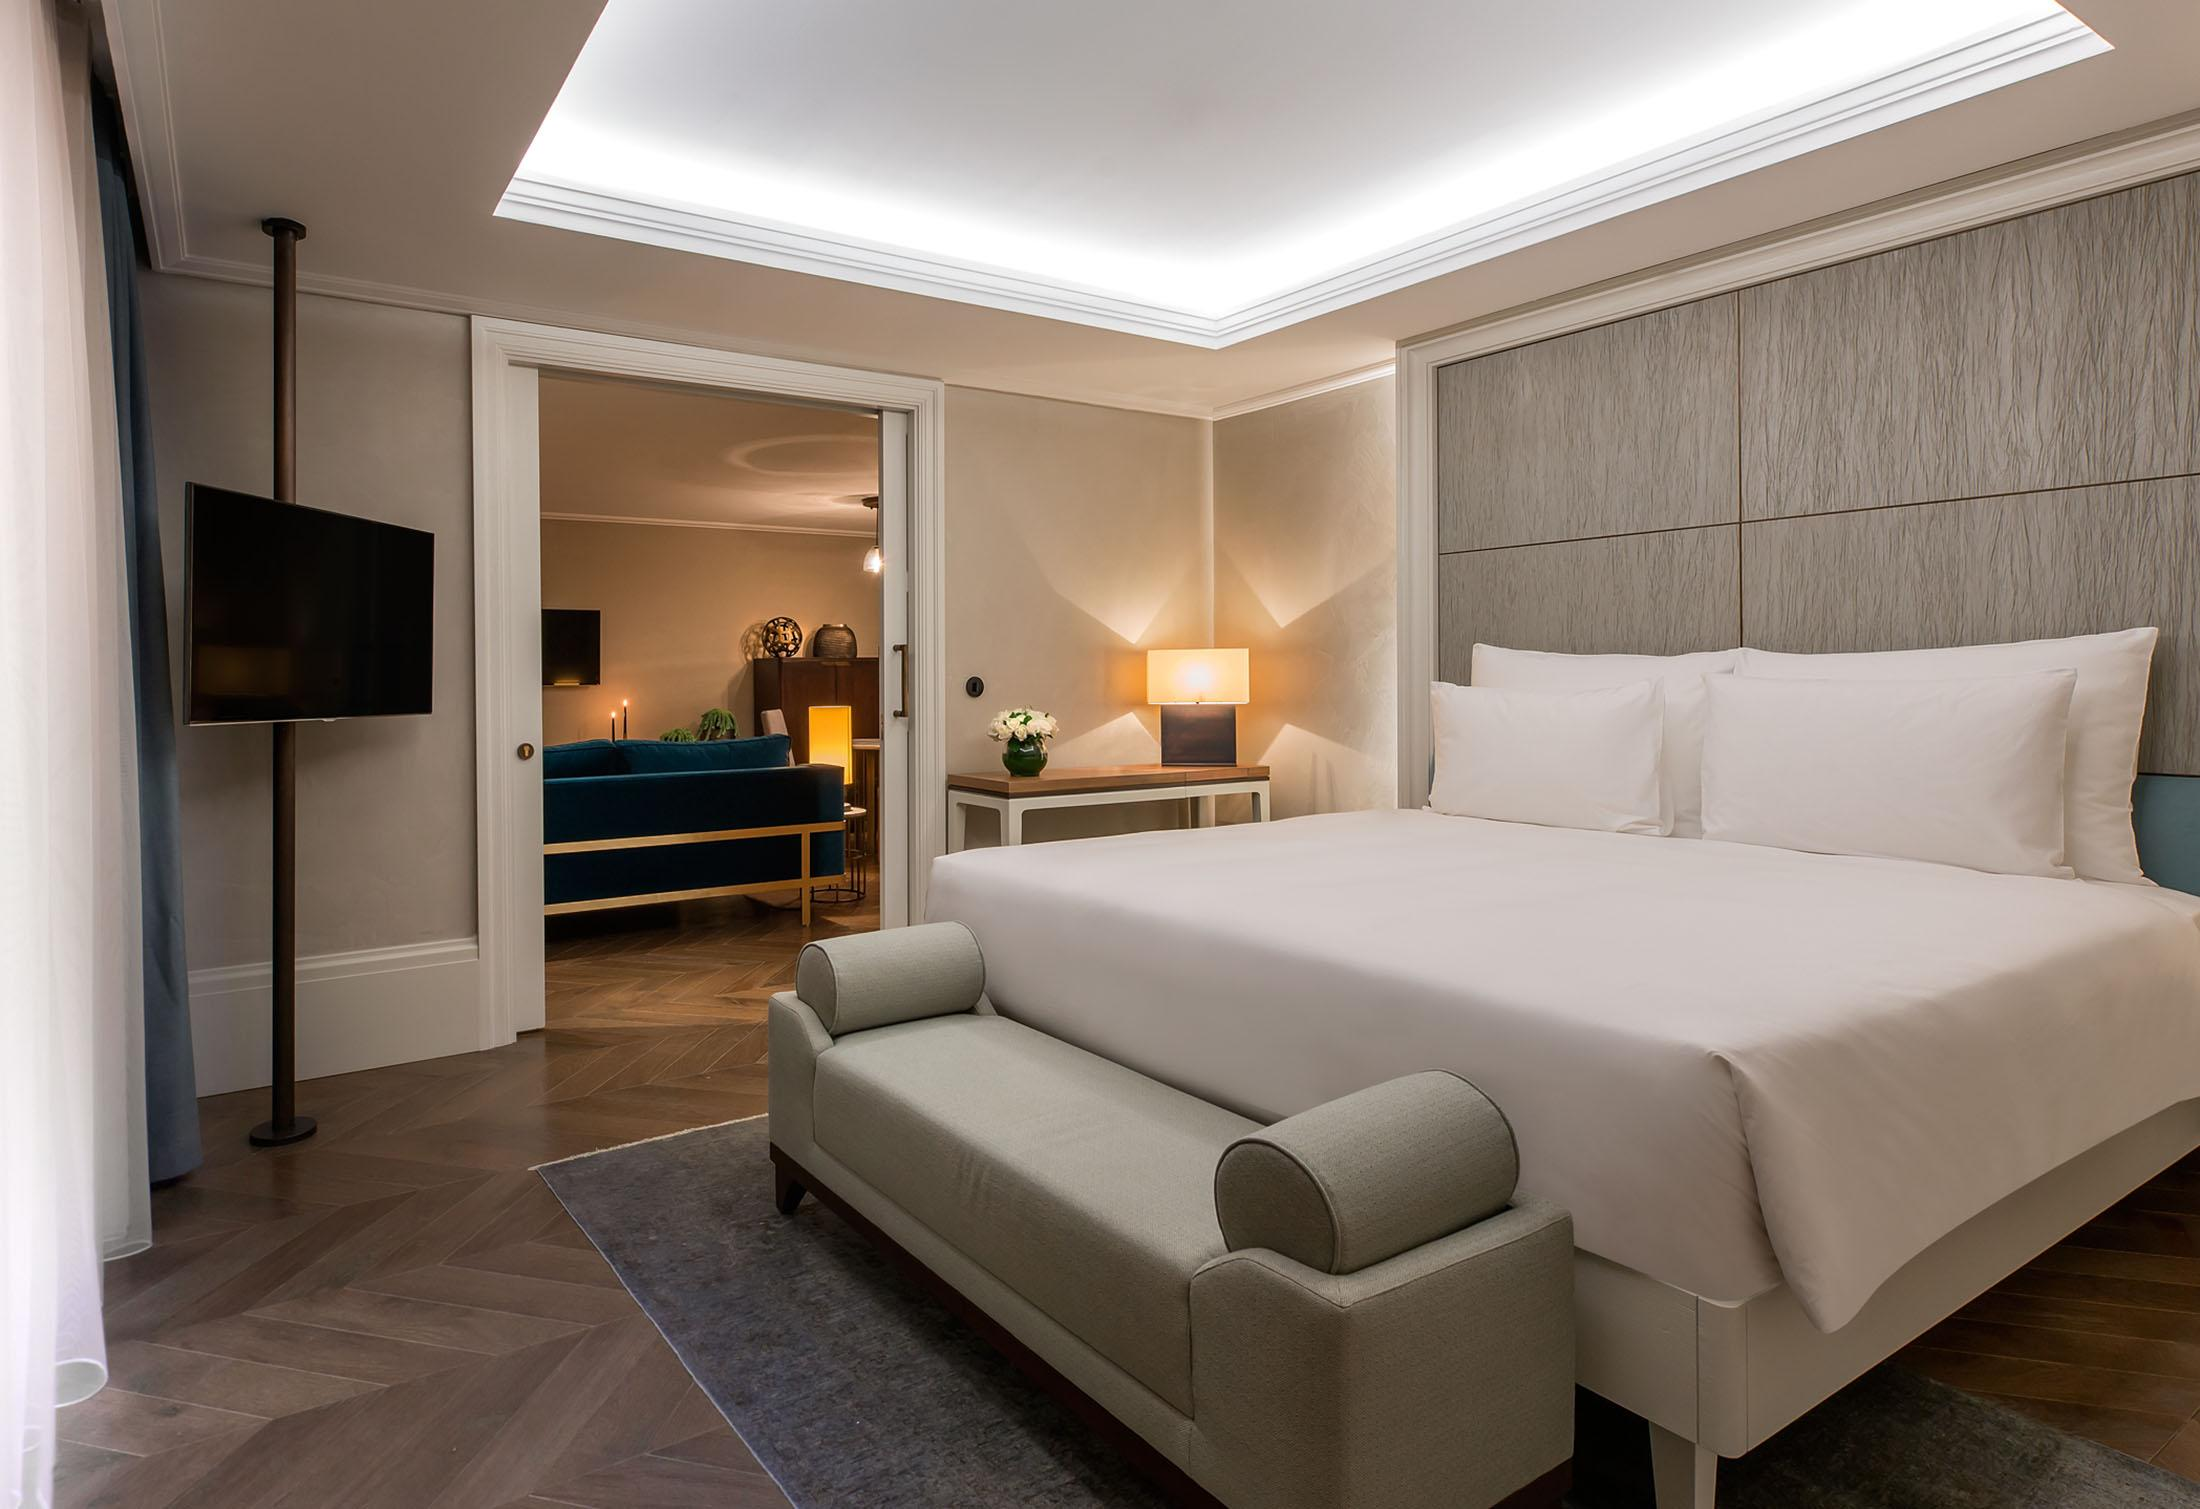 A modern and spacious hotel room